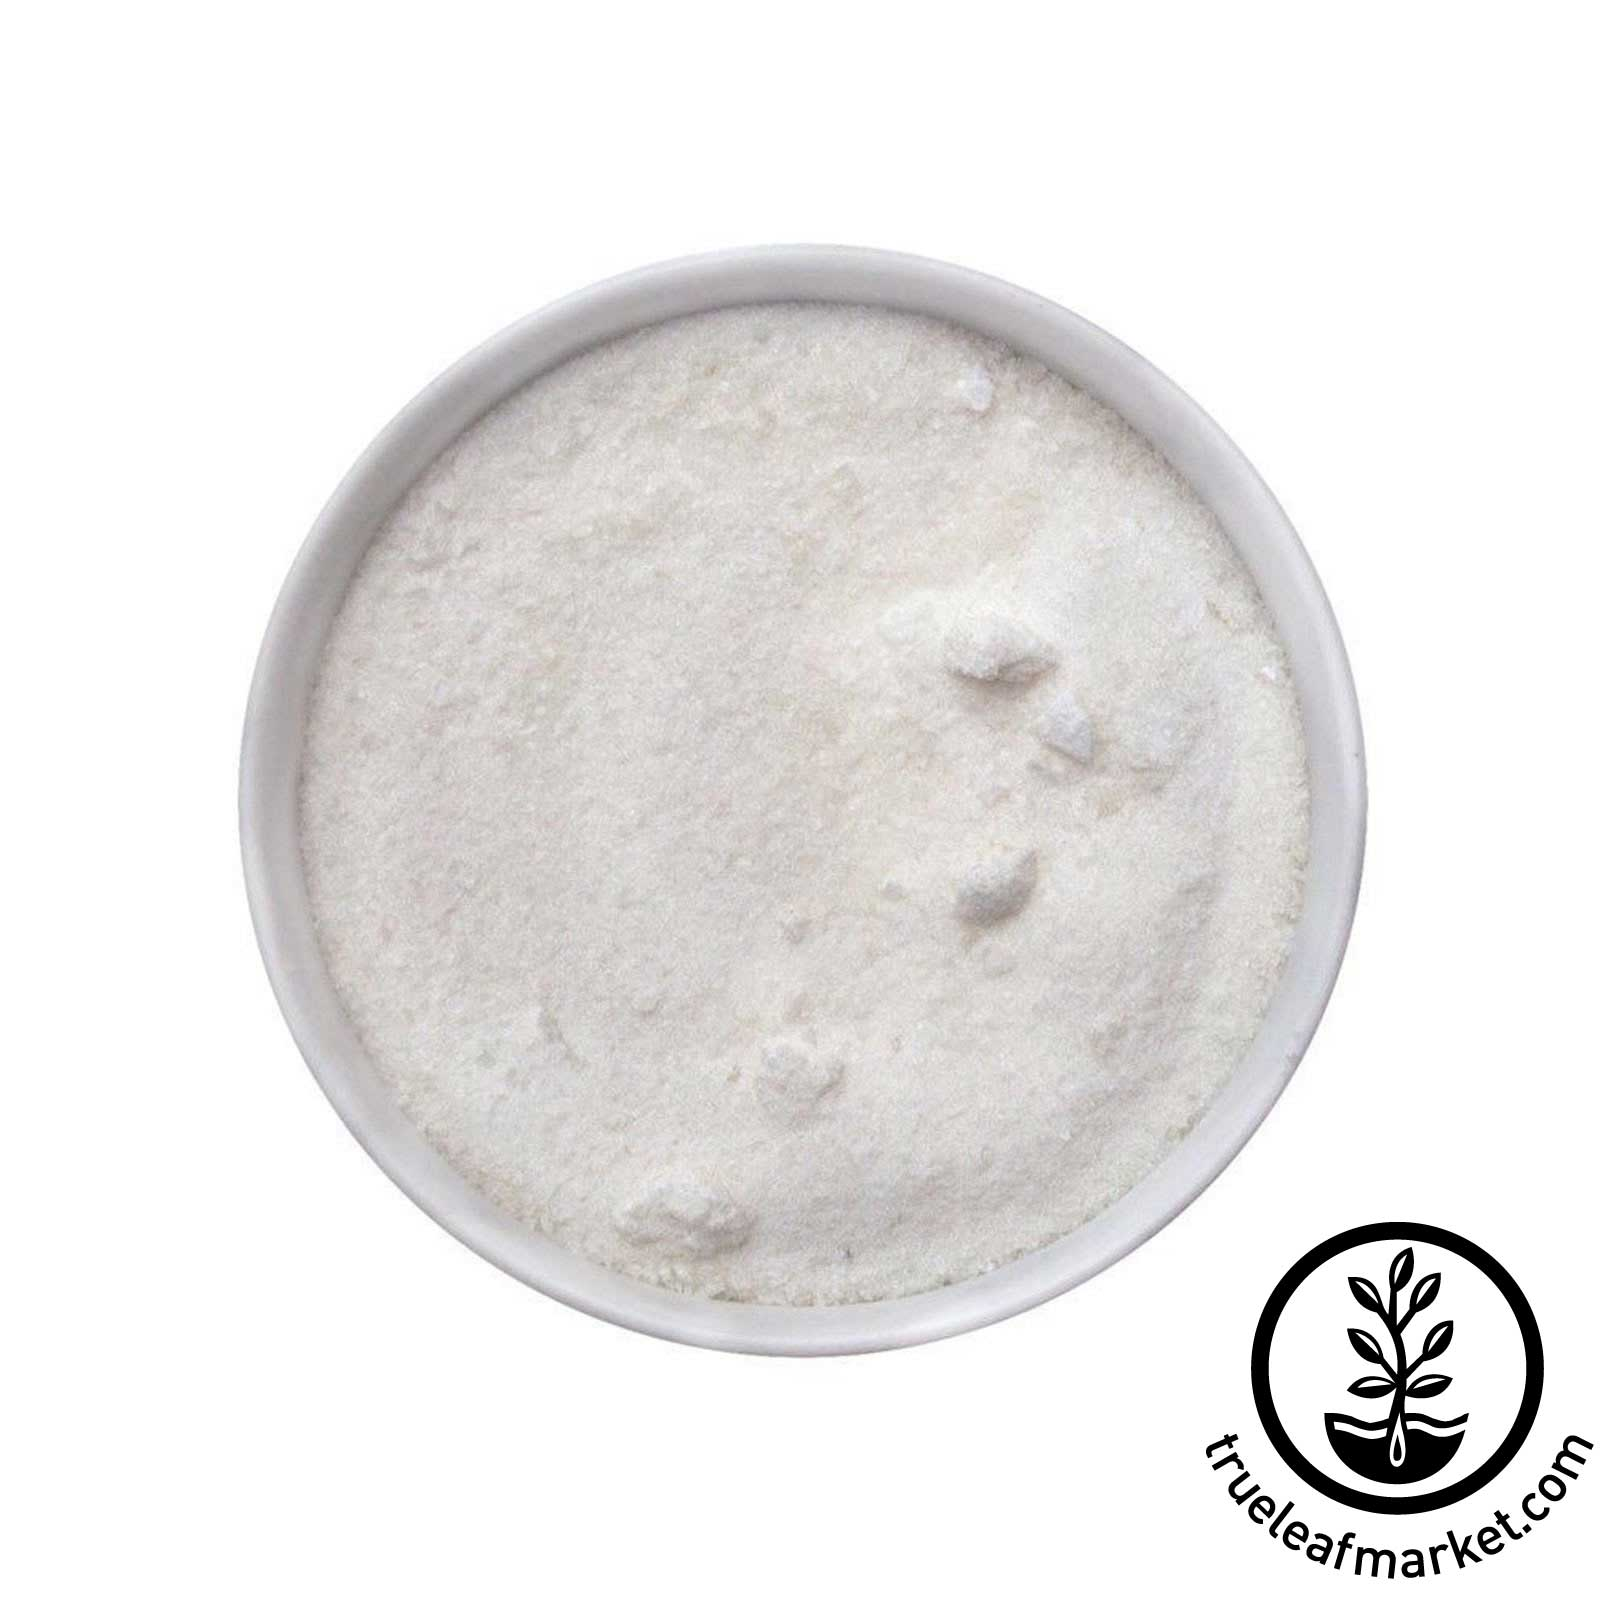 Certified Organic Coconut Water Powder